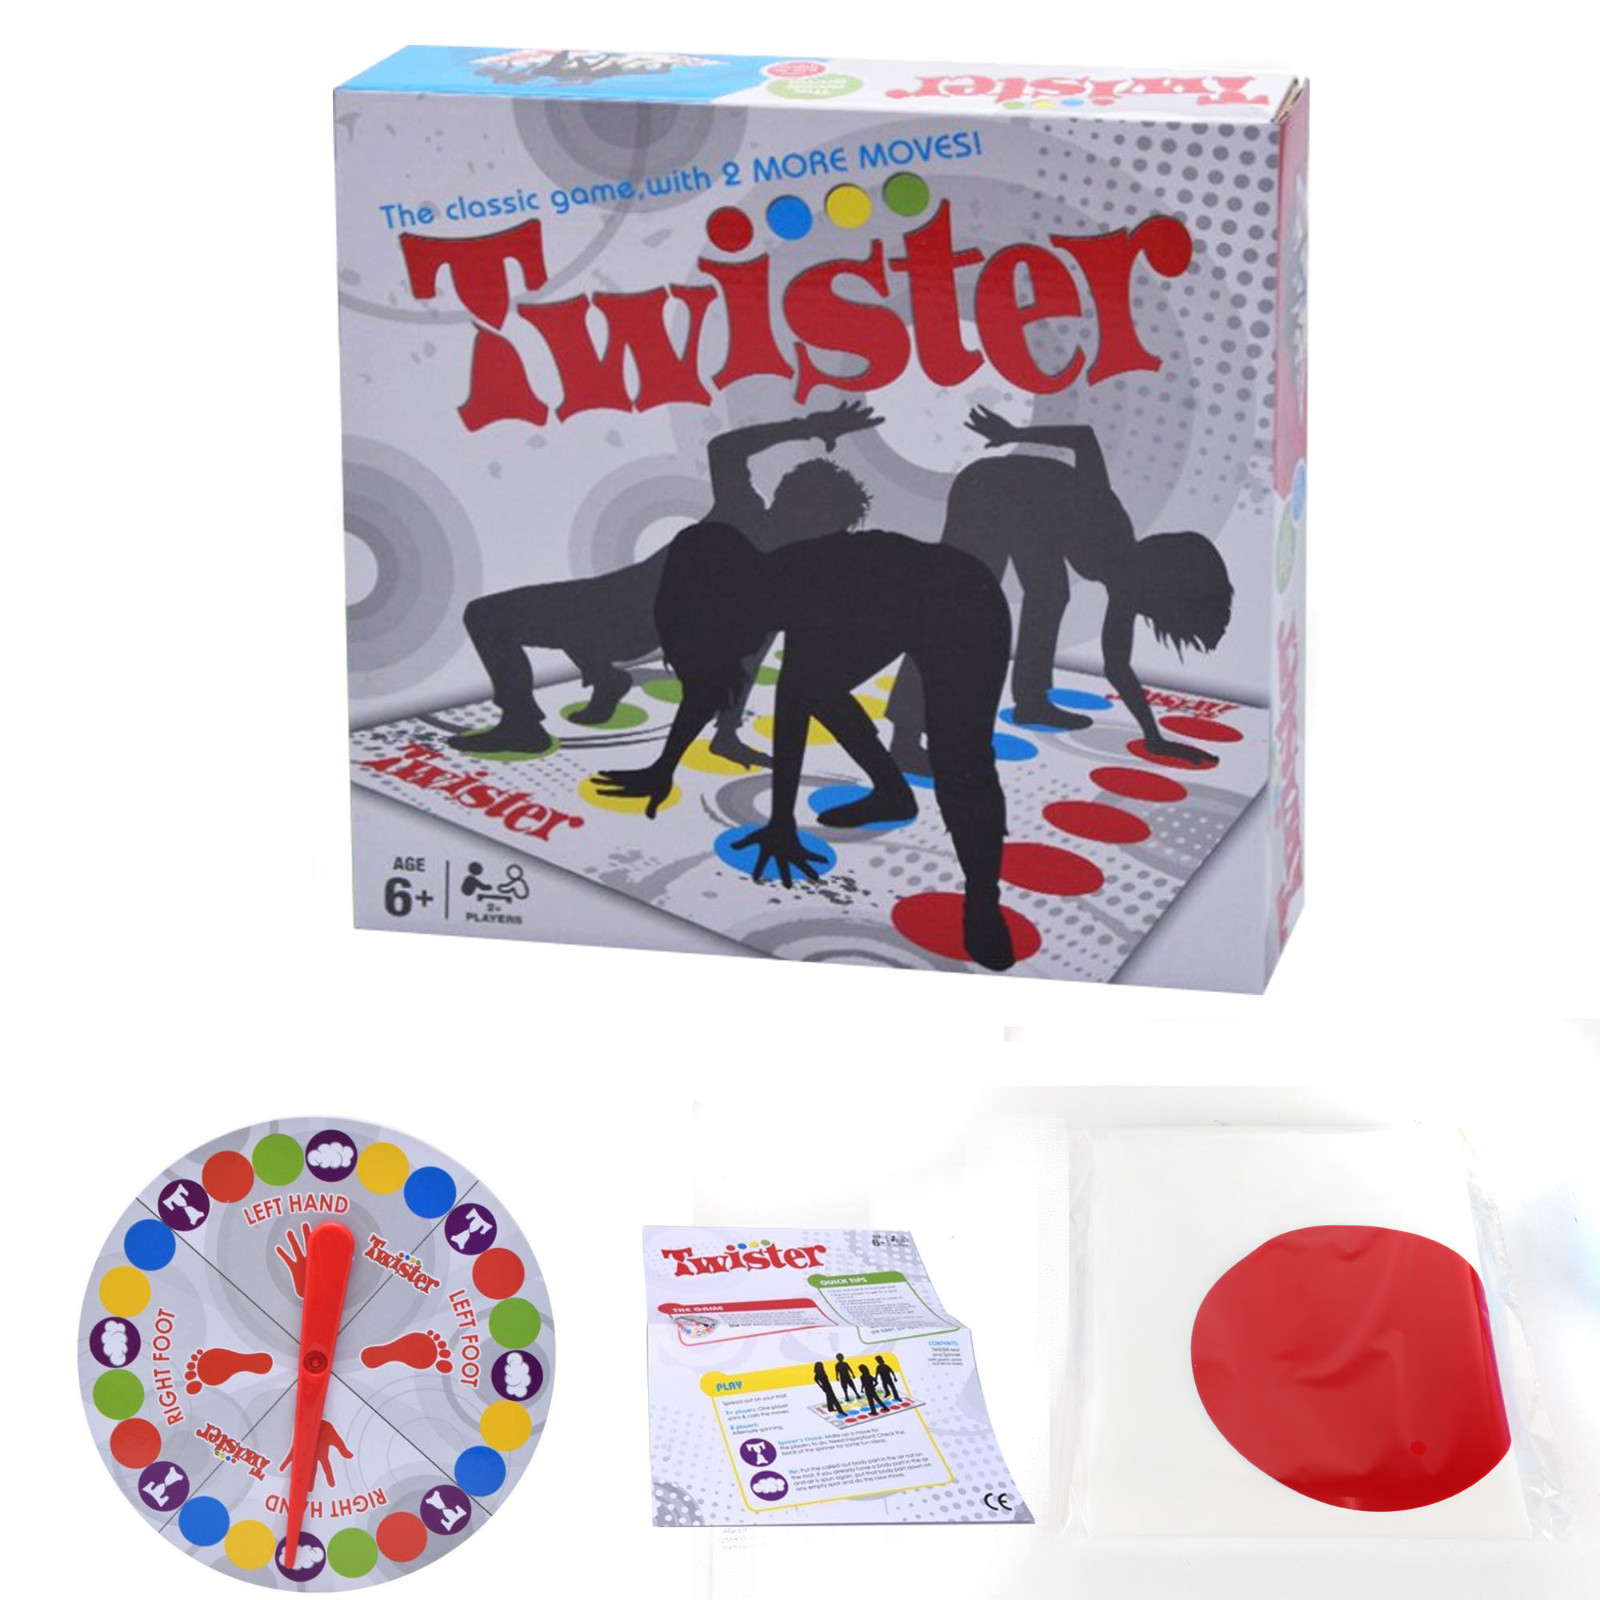 Twister Games Twister Floor Game Twister Ultimate Game For Family And Party CLASSIC FUN Adults Children